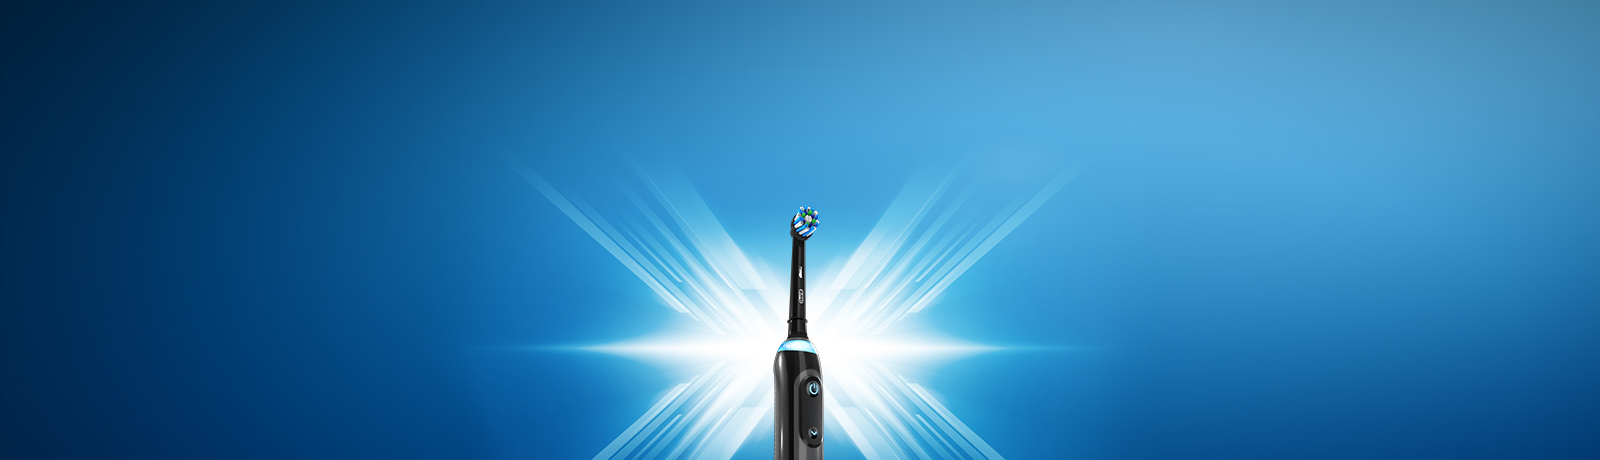 Oral-B Genius X Electric Toothbrushes Coming by September 2019